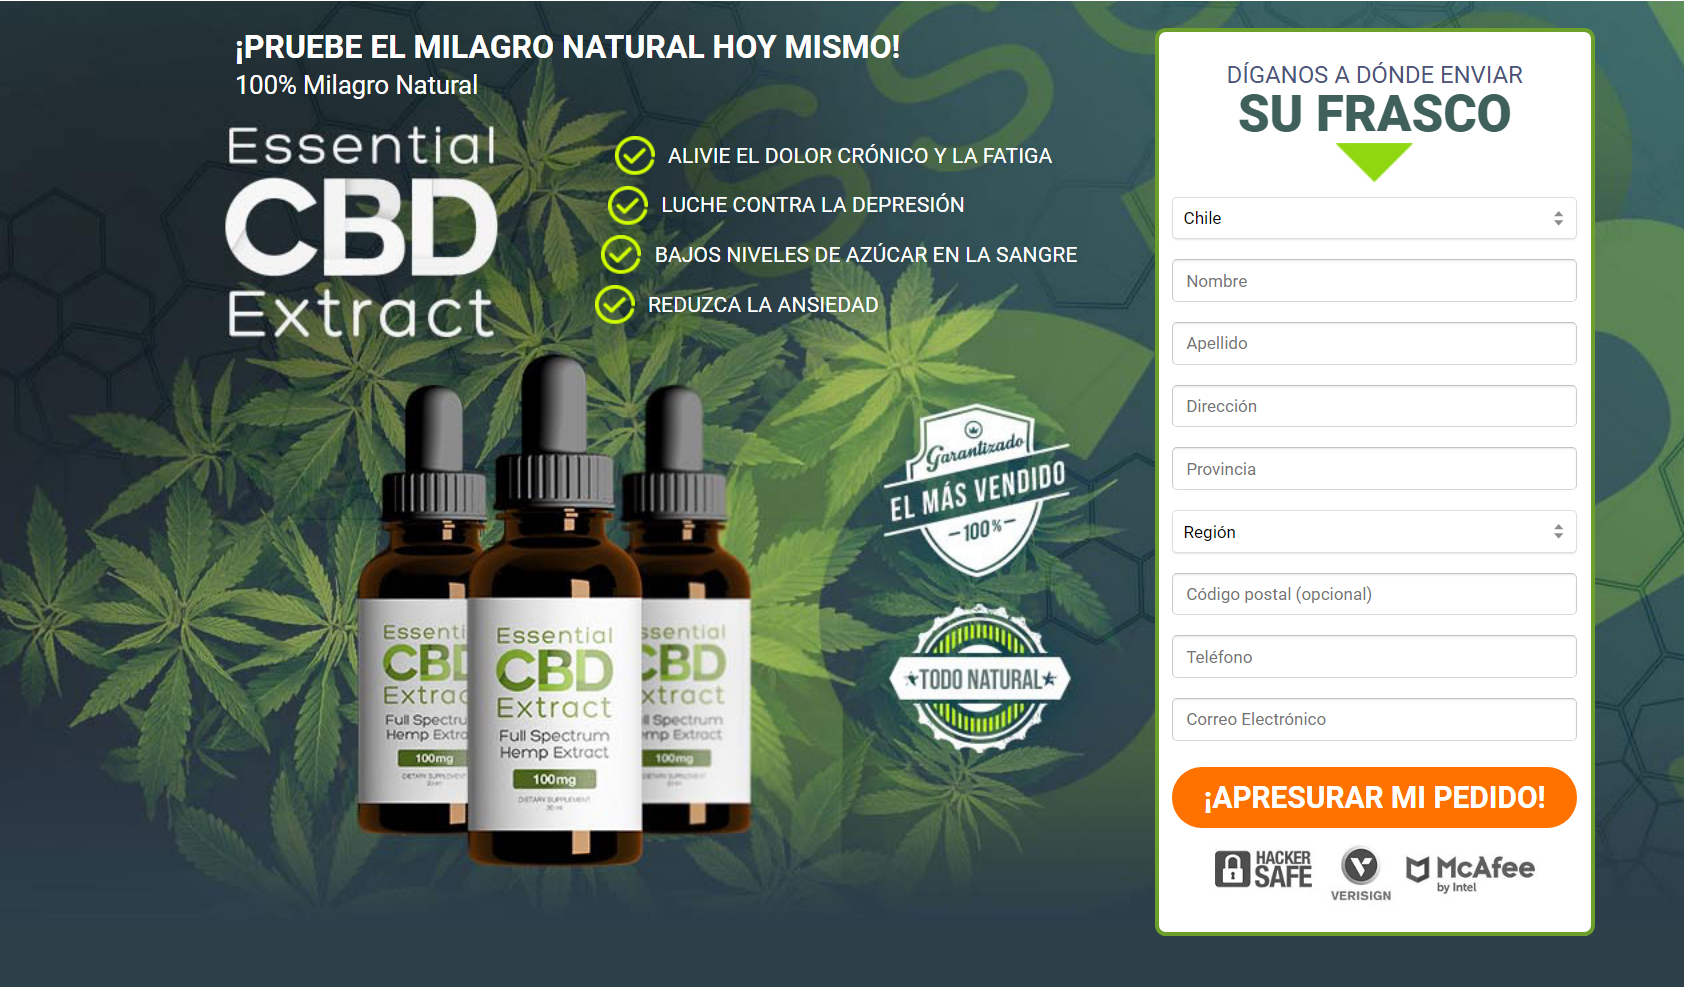 essential ebd extract chile buy